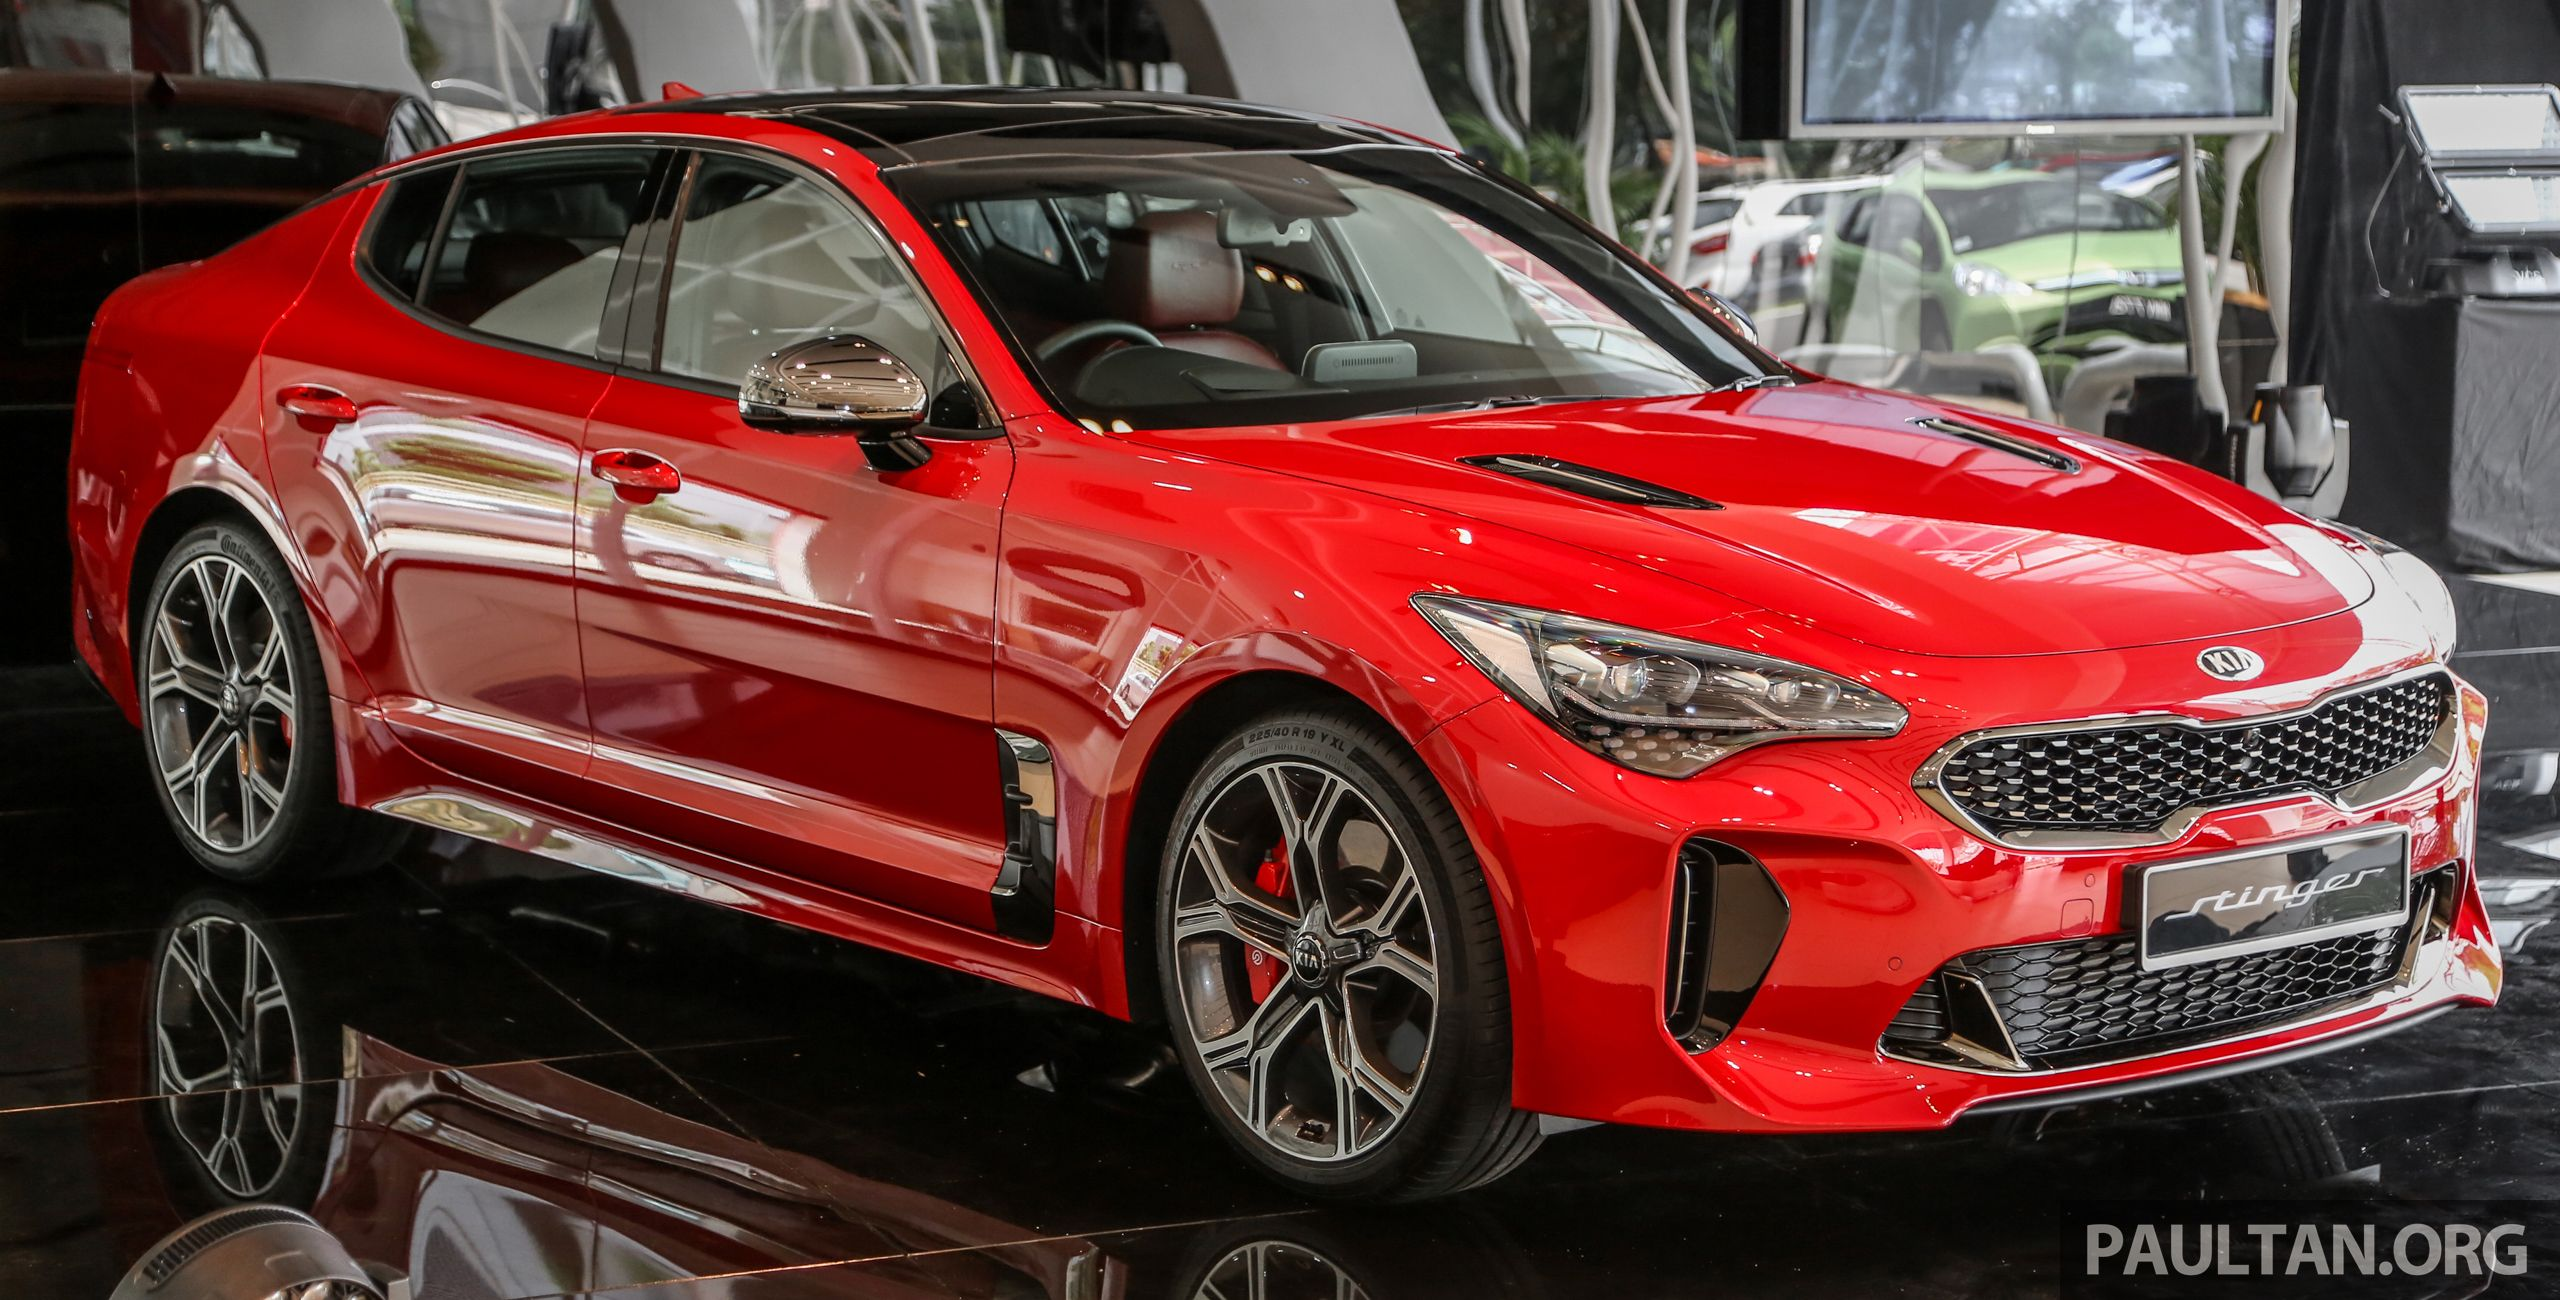 Kia Stinger Launched In Malaysia 251 Hp 2 0 Gt Line And 365 Hp 3 3 V6 Gt Cbu Rwd Rm240k To Rm310k Kia Stinger Kia Kia Motors